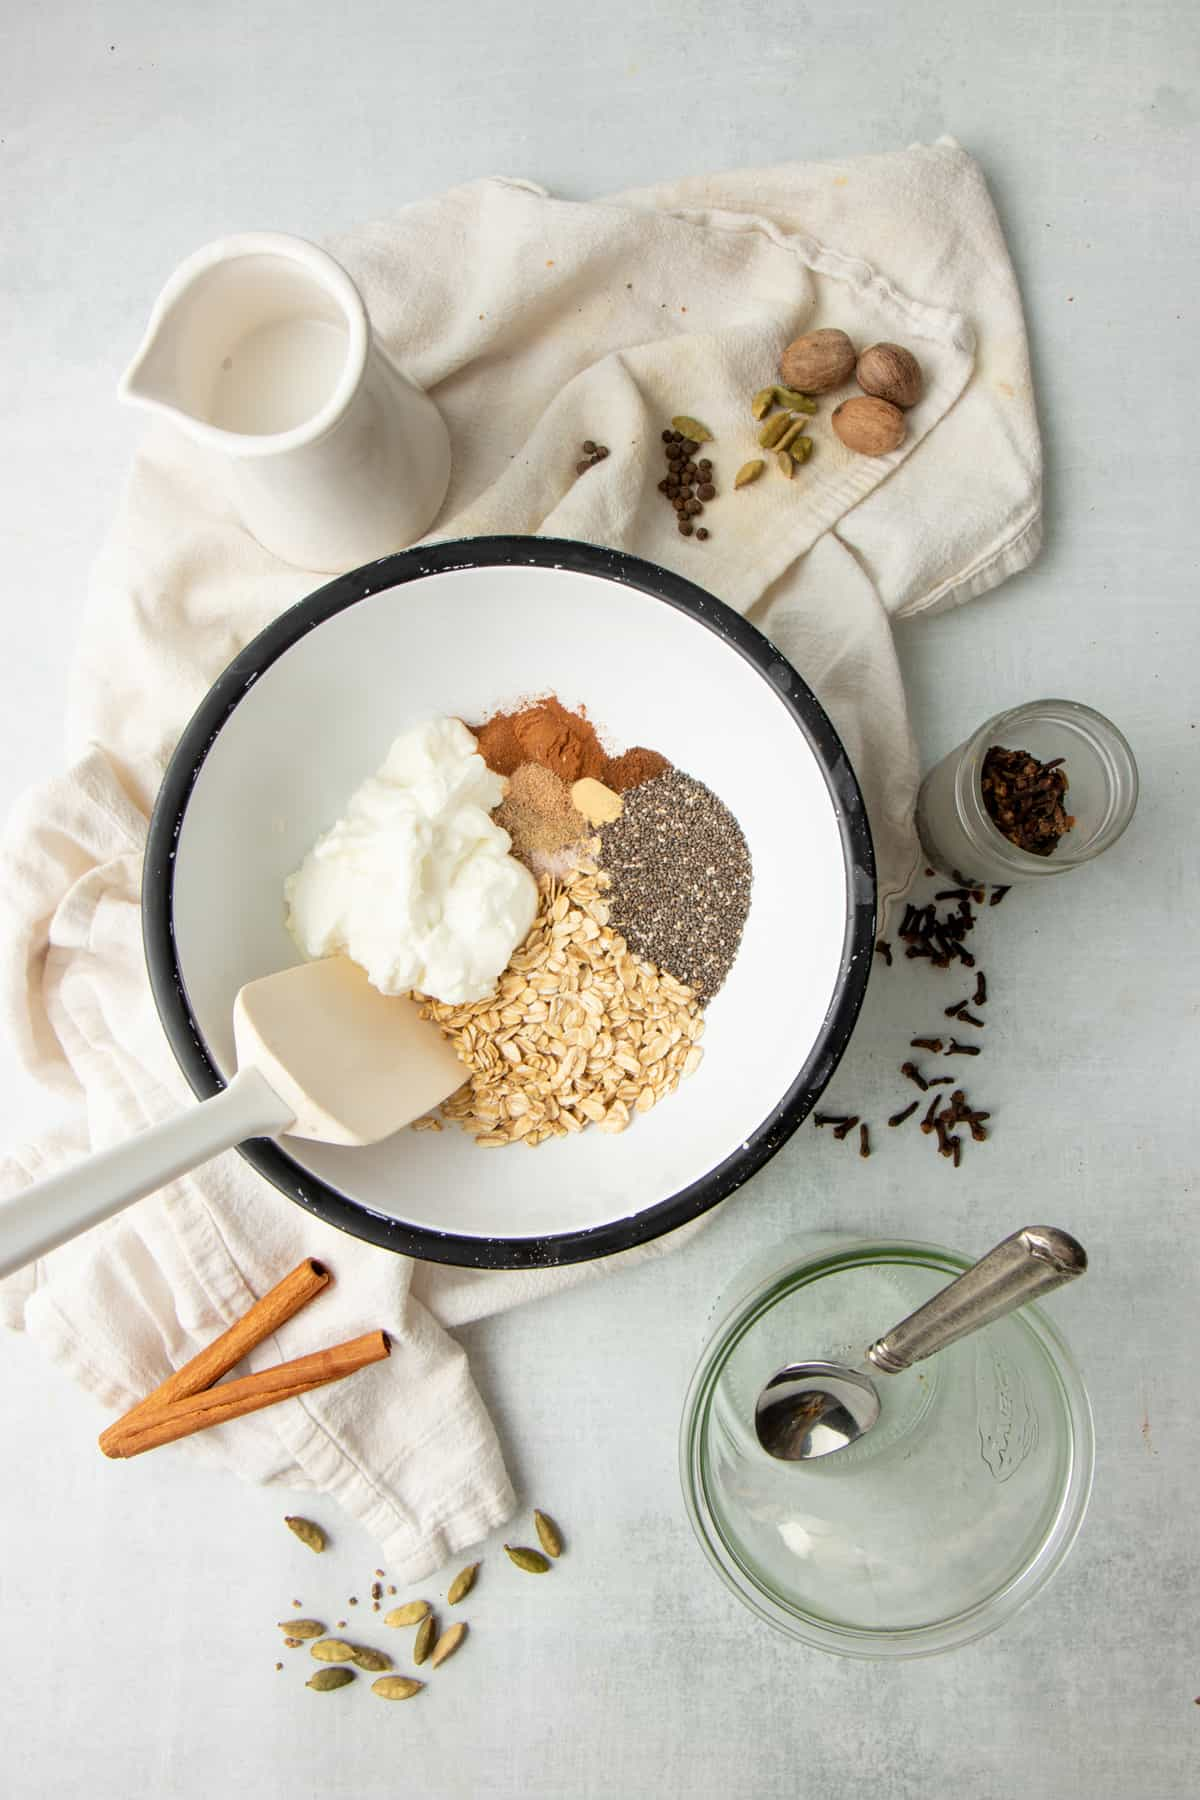 A white rubber spatula sits in a white mixing bowl full of oatmeal, chia seeds, Greek yogurt, and other ingredients.